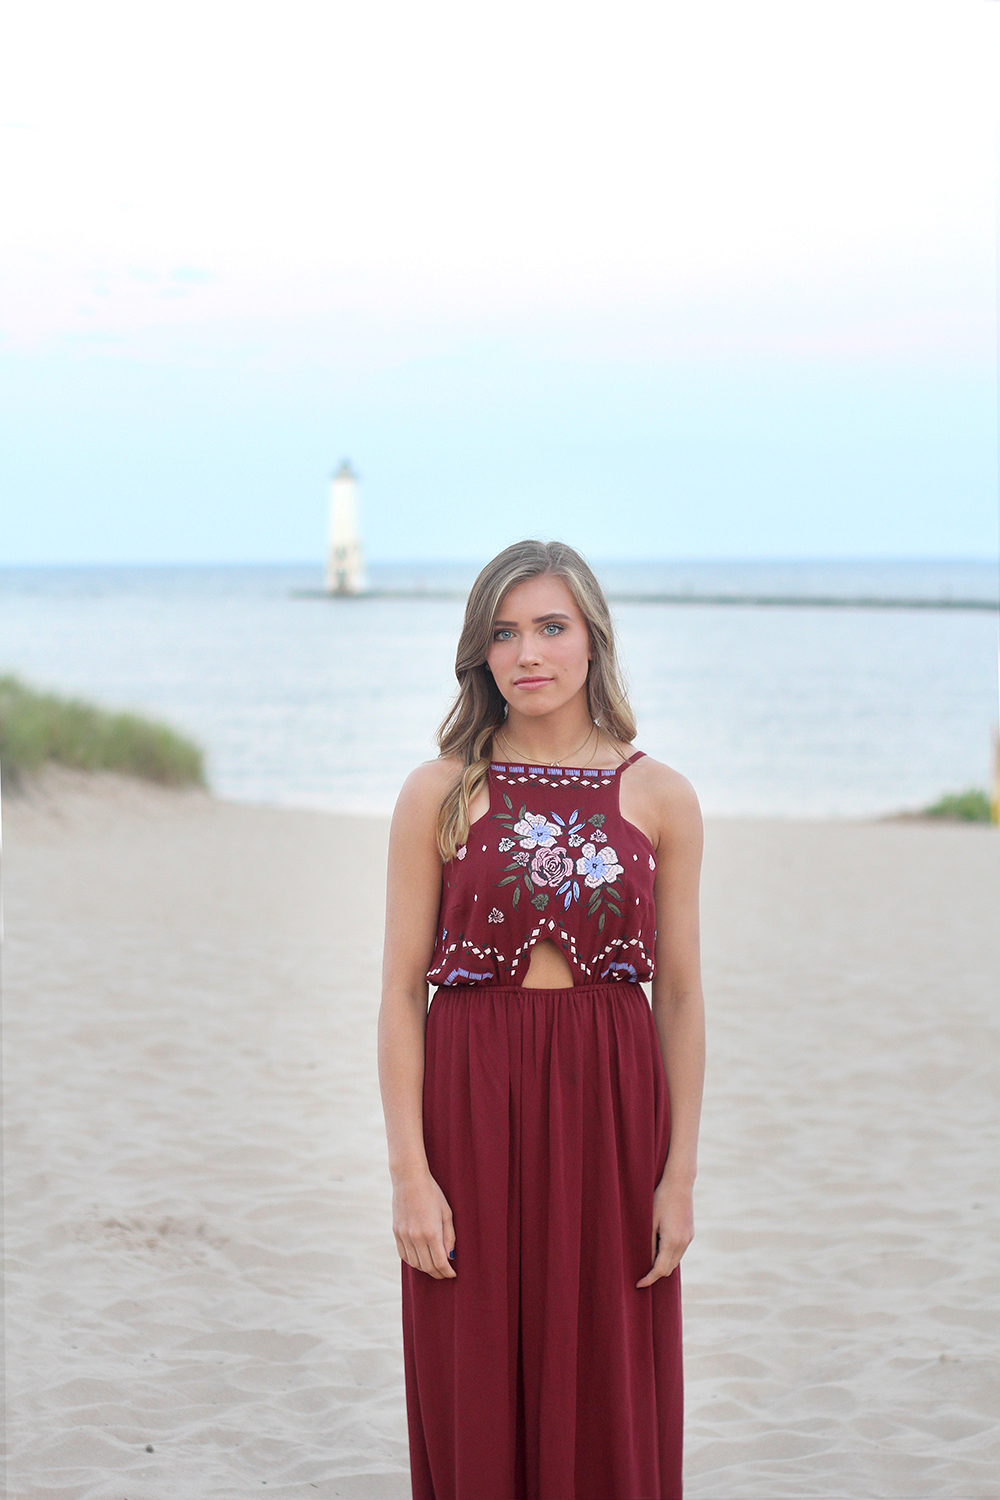 Jillian Graham Frankfort lighthouse Lake Michigan beach senior portrait